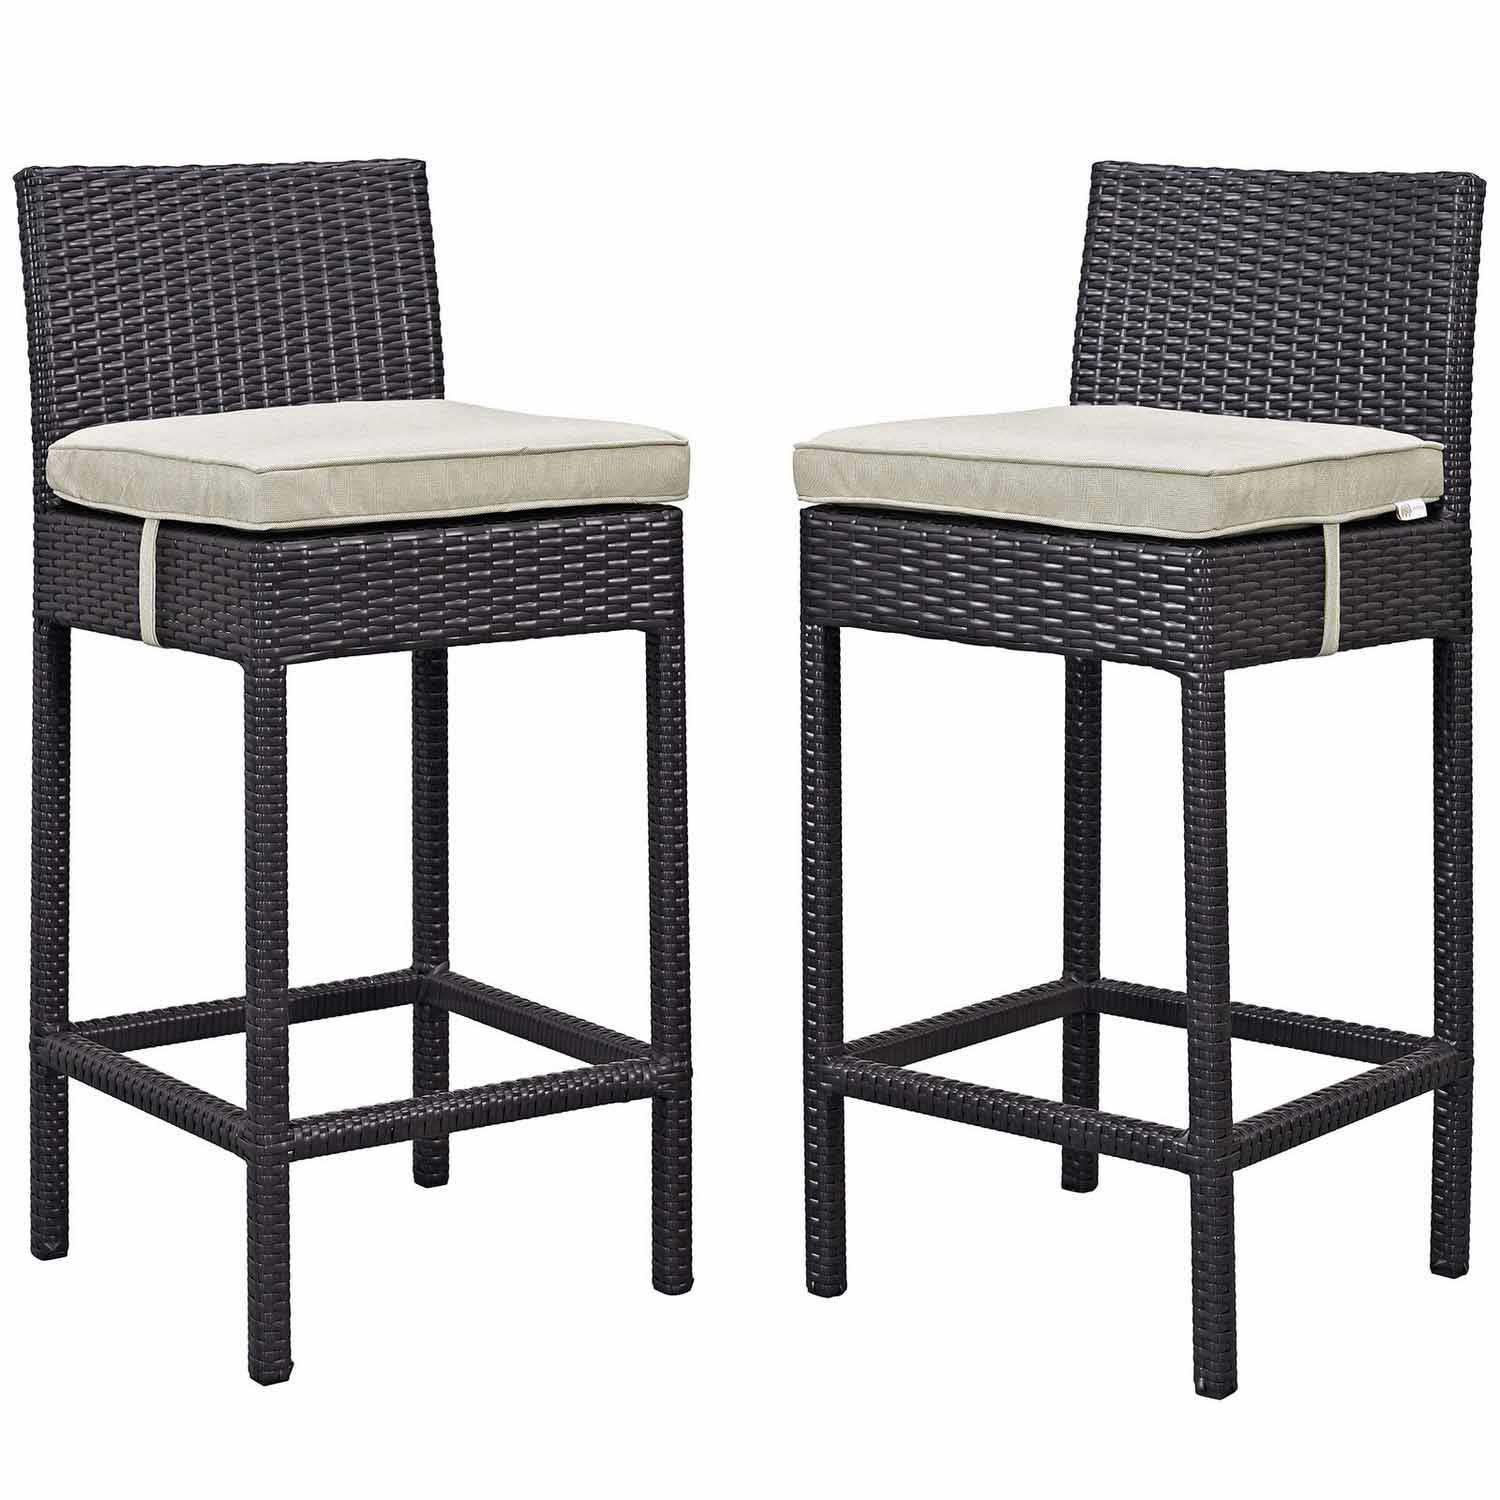 Modway Lift Bar Stool Outdoor Patio Set of 2 - Espresso Beige